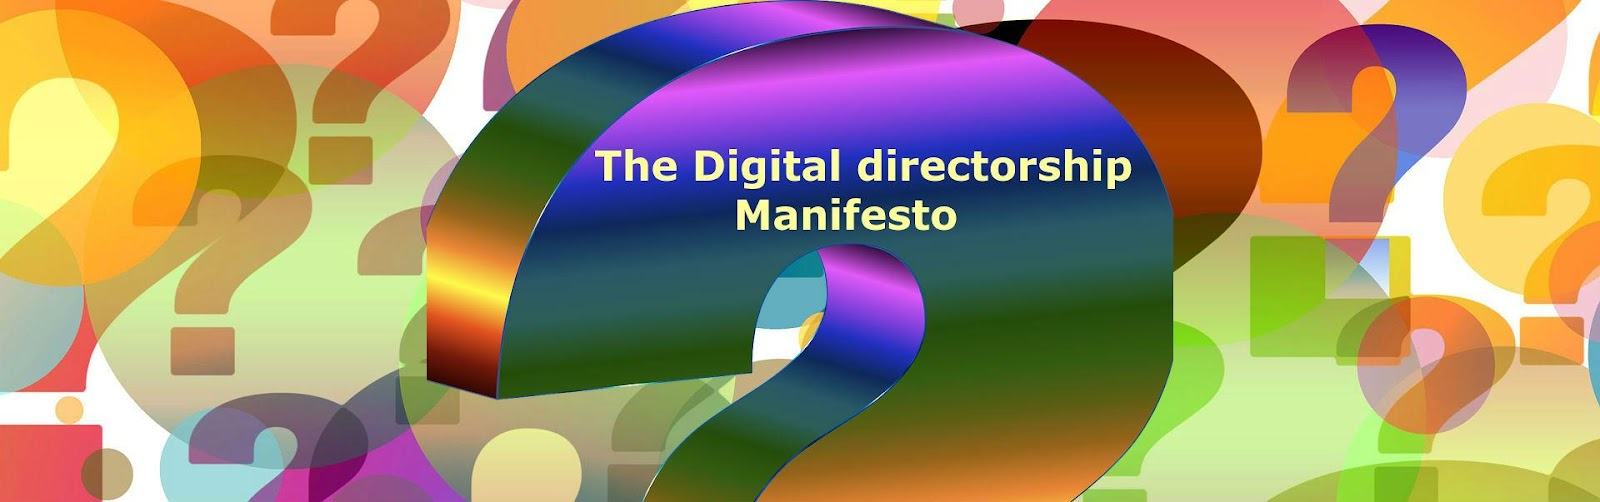 The Digital Directorship Manifesto.jpg